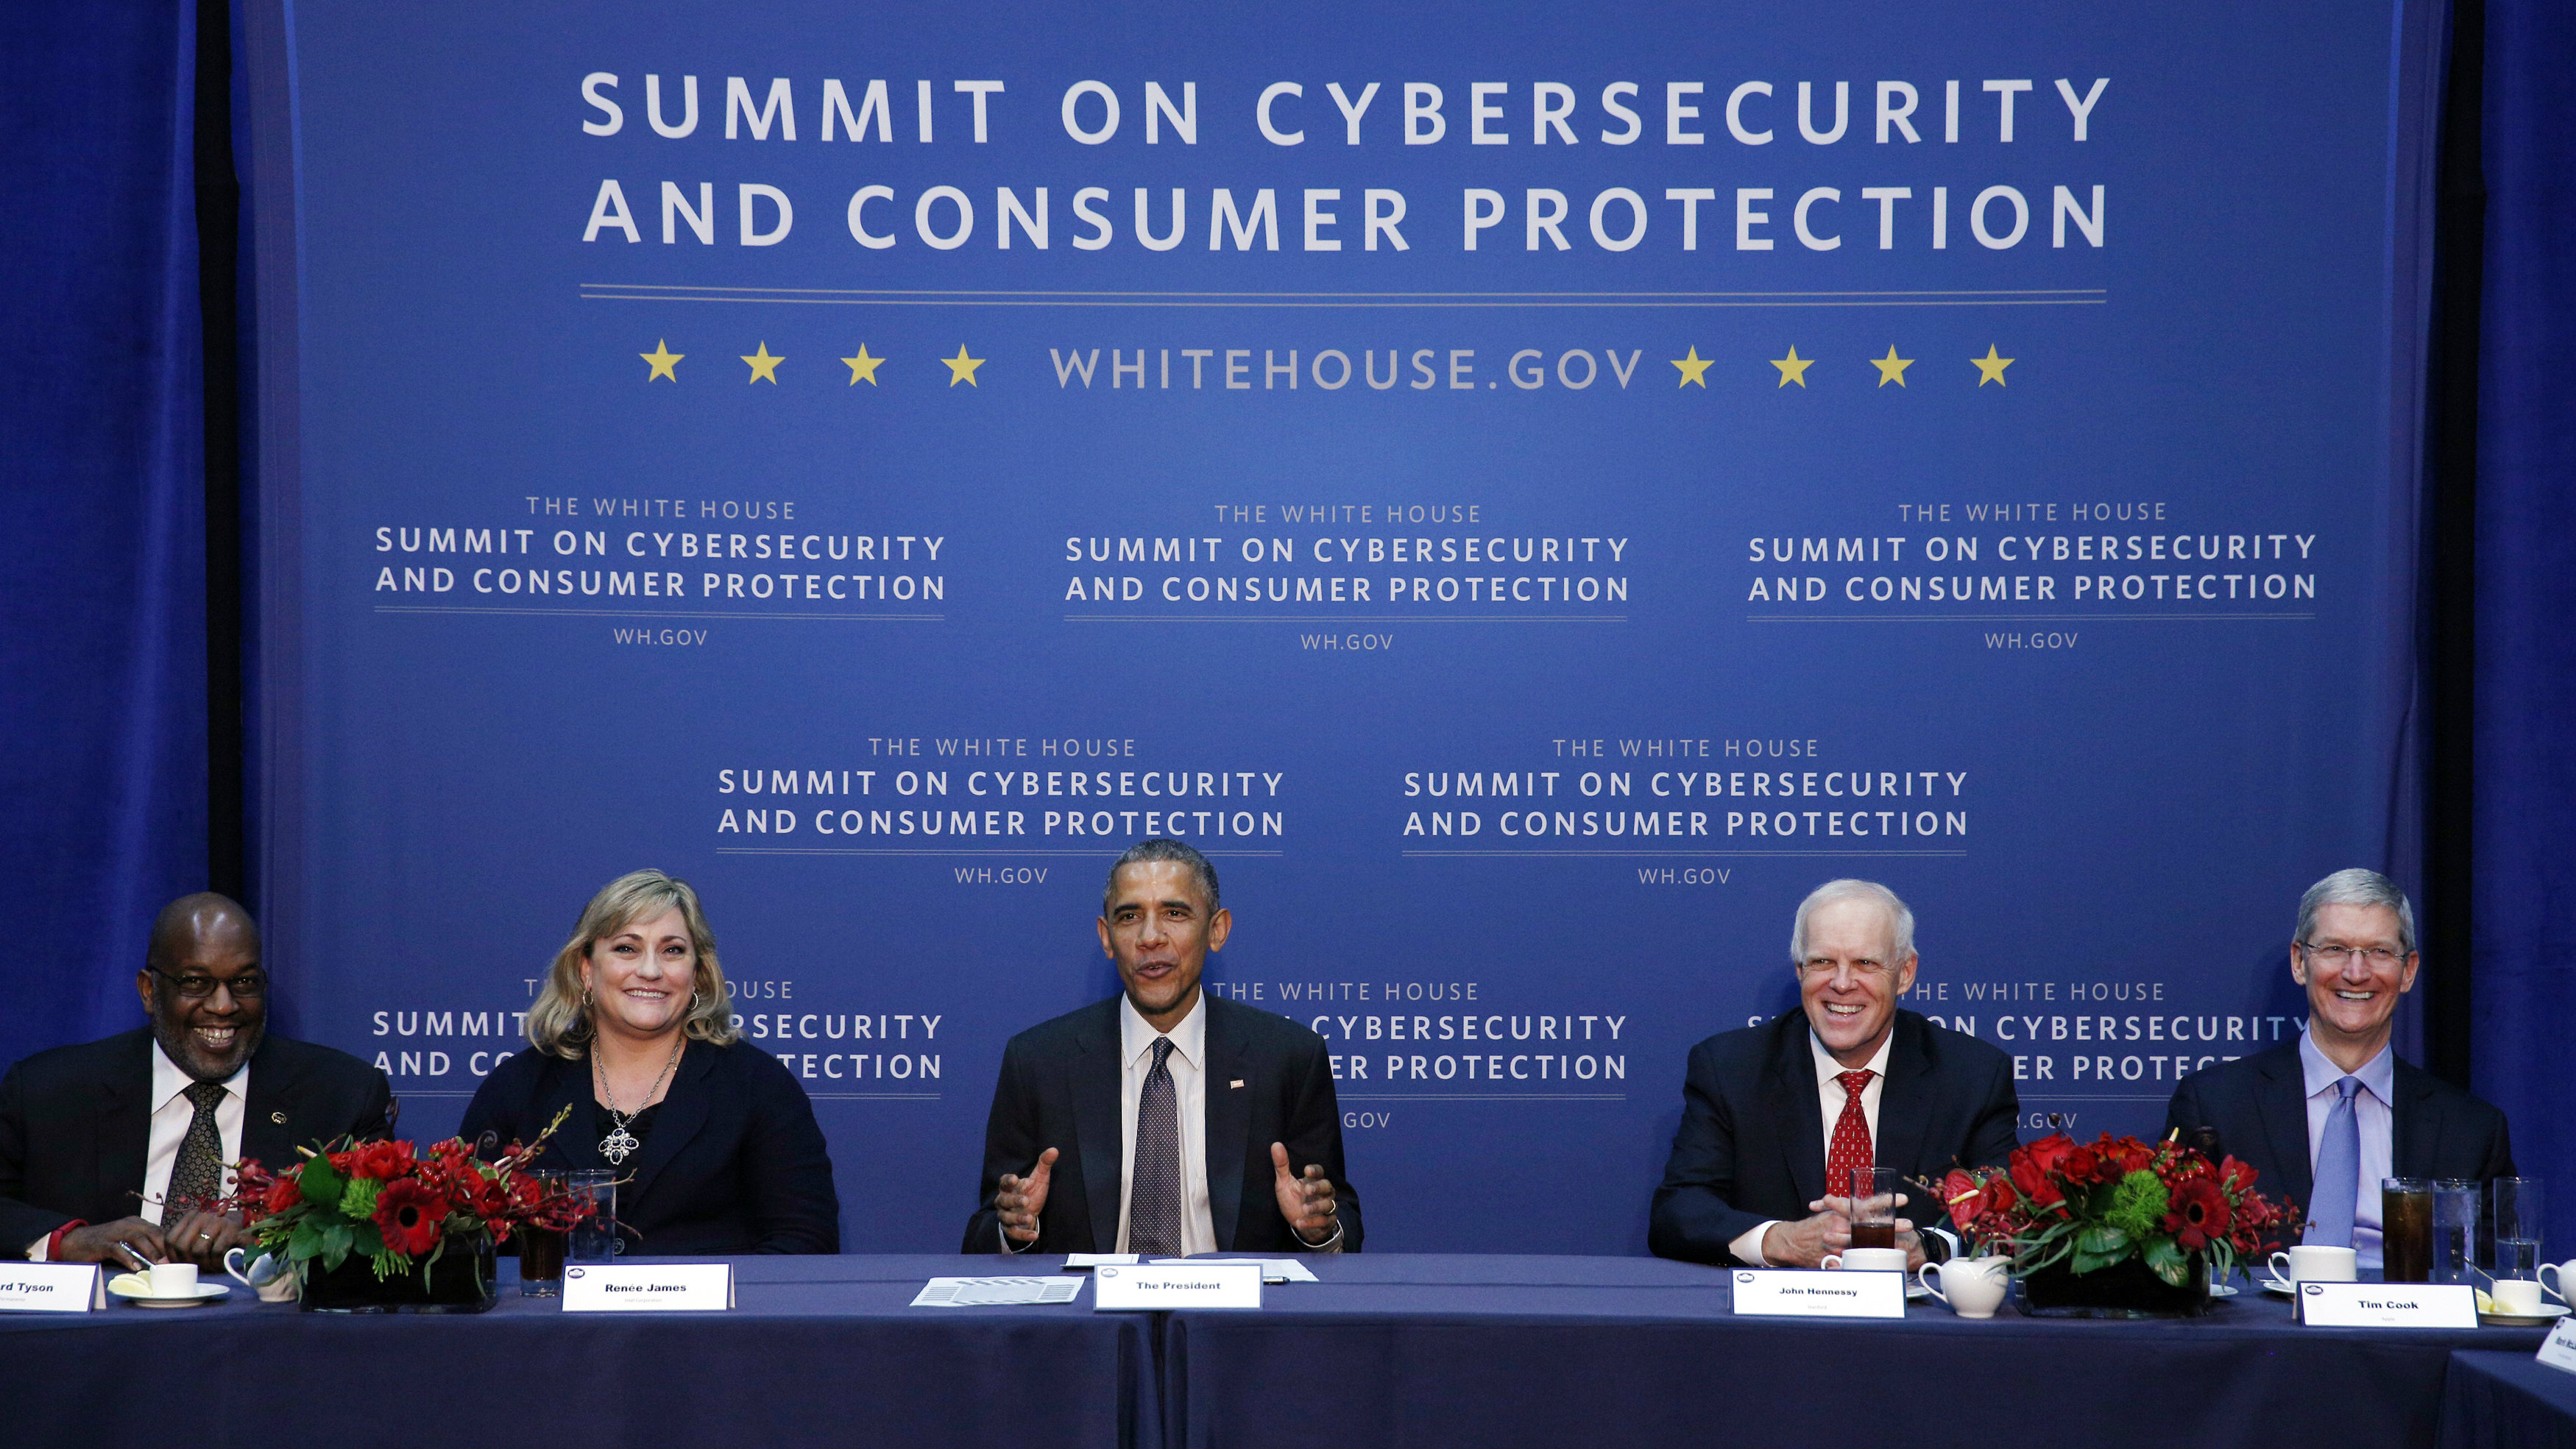 obama cybersecurity image